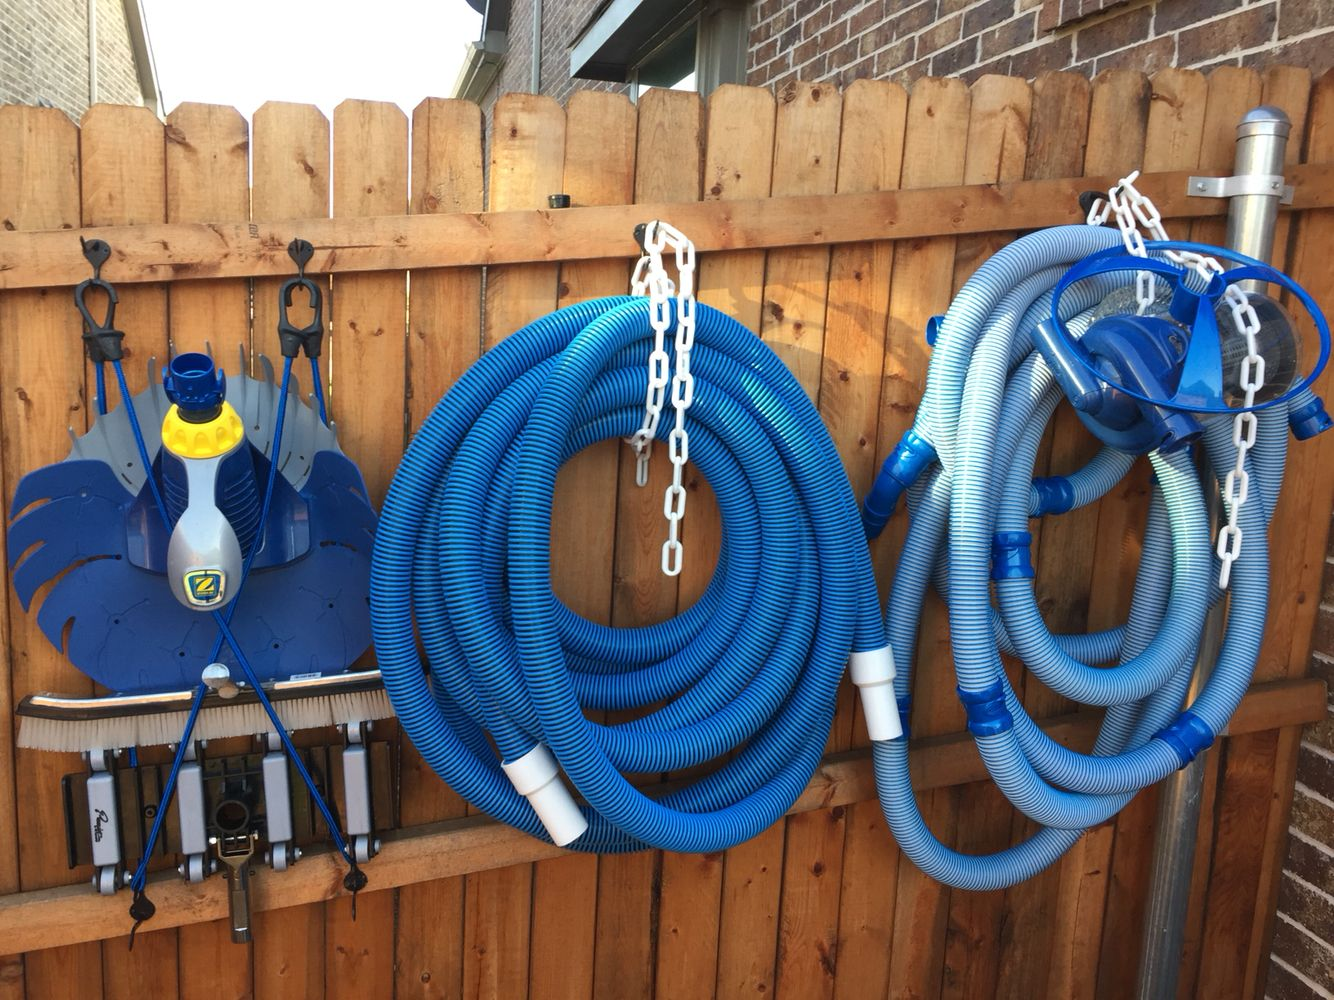 Superior Coat Hooks, Bungees And Plastic Chains Make For Tidy Pool Equipment Storage.